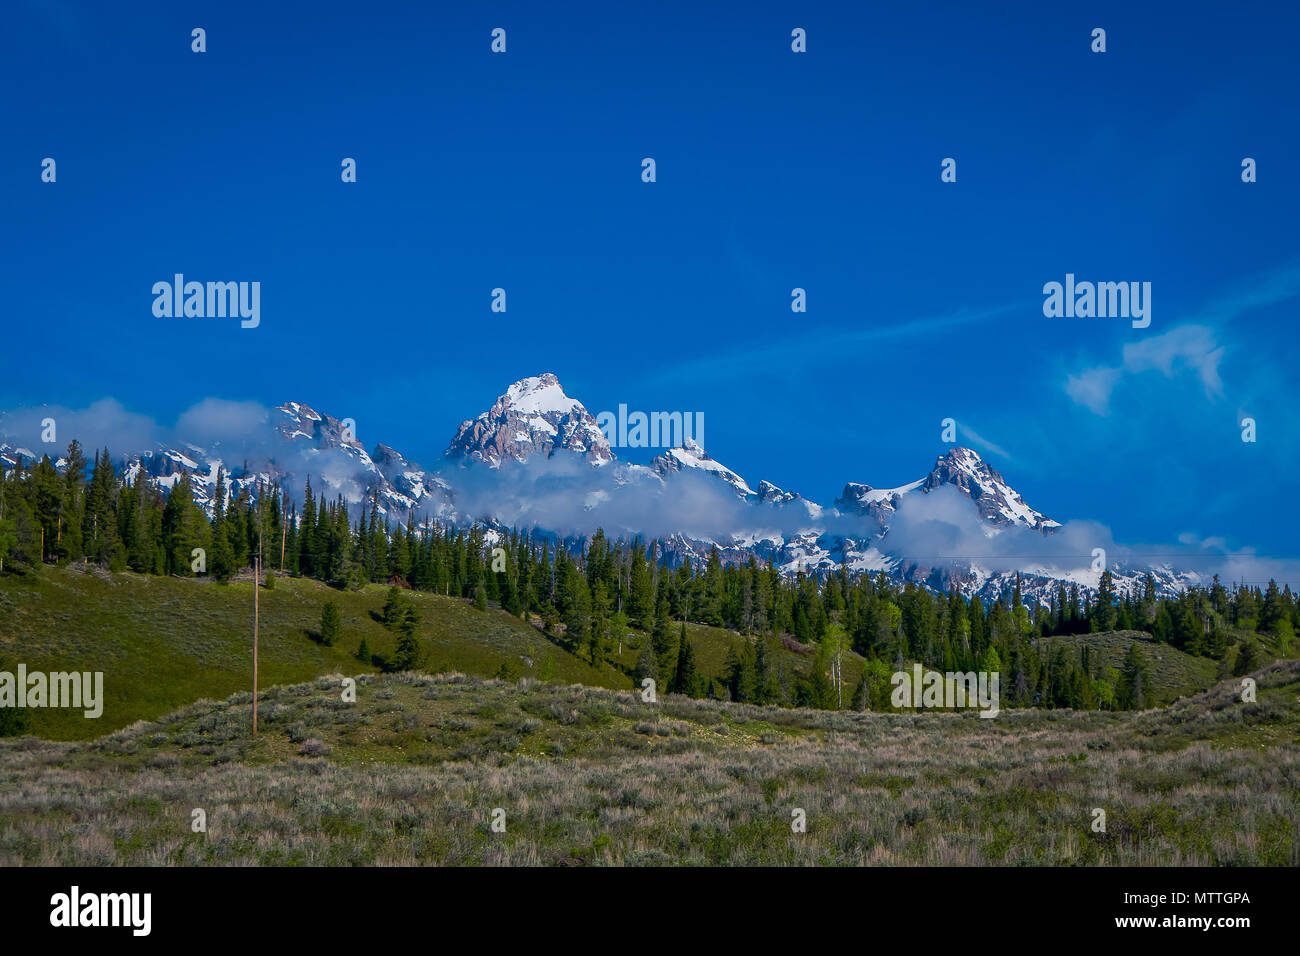 Grand Tetons range in morning light, with a huge mounatins partial covered with snow in the horizont in gorgeous blue sky - Stock Image